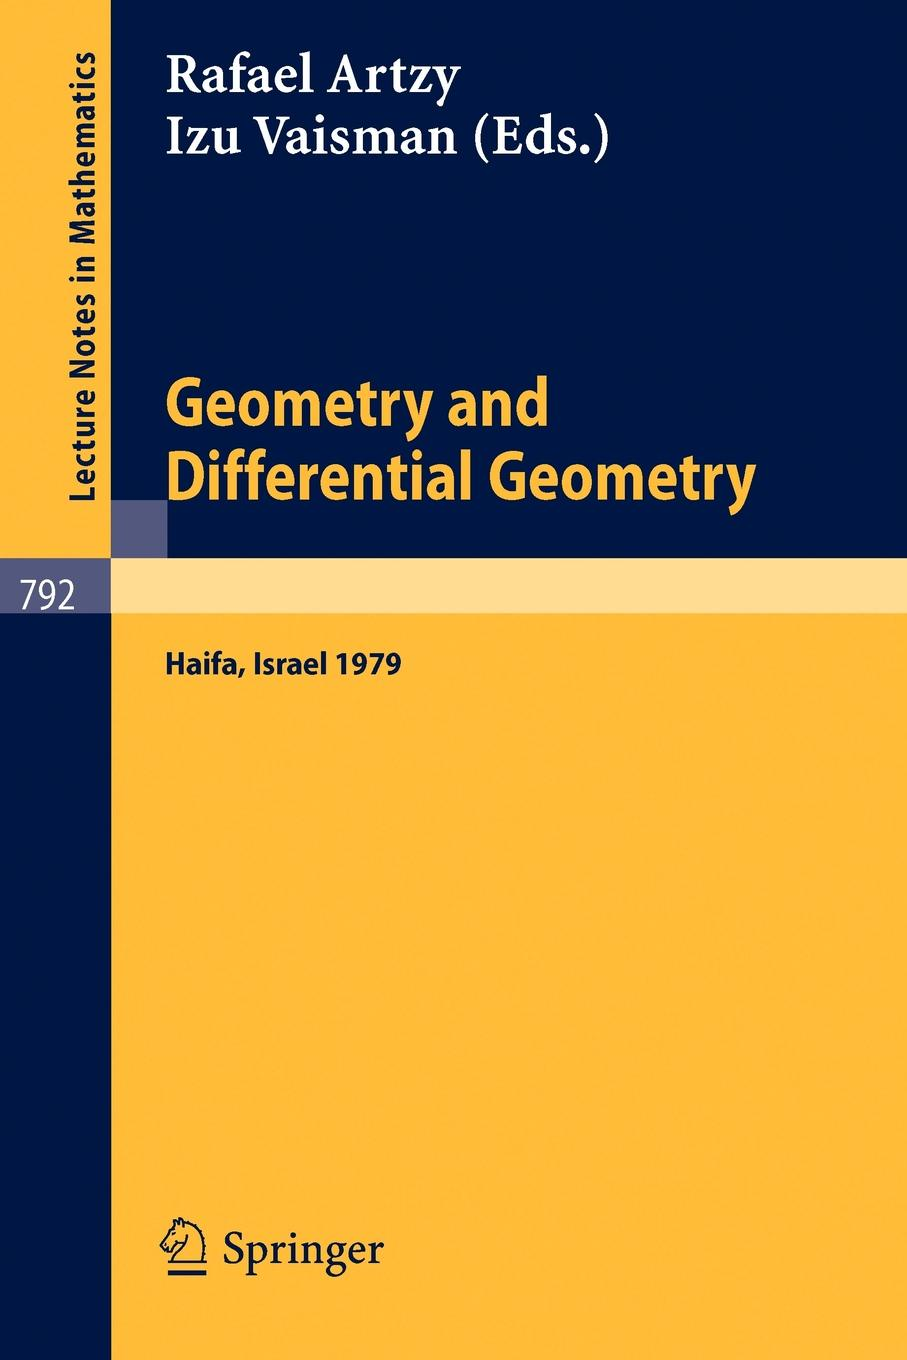 Geometry and Differential Geometry. Proceedings of a Conference Held at the University Haifa, Israel, March 18-23, 1979